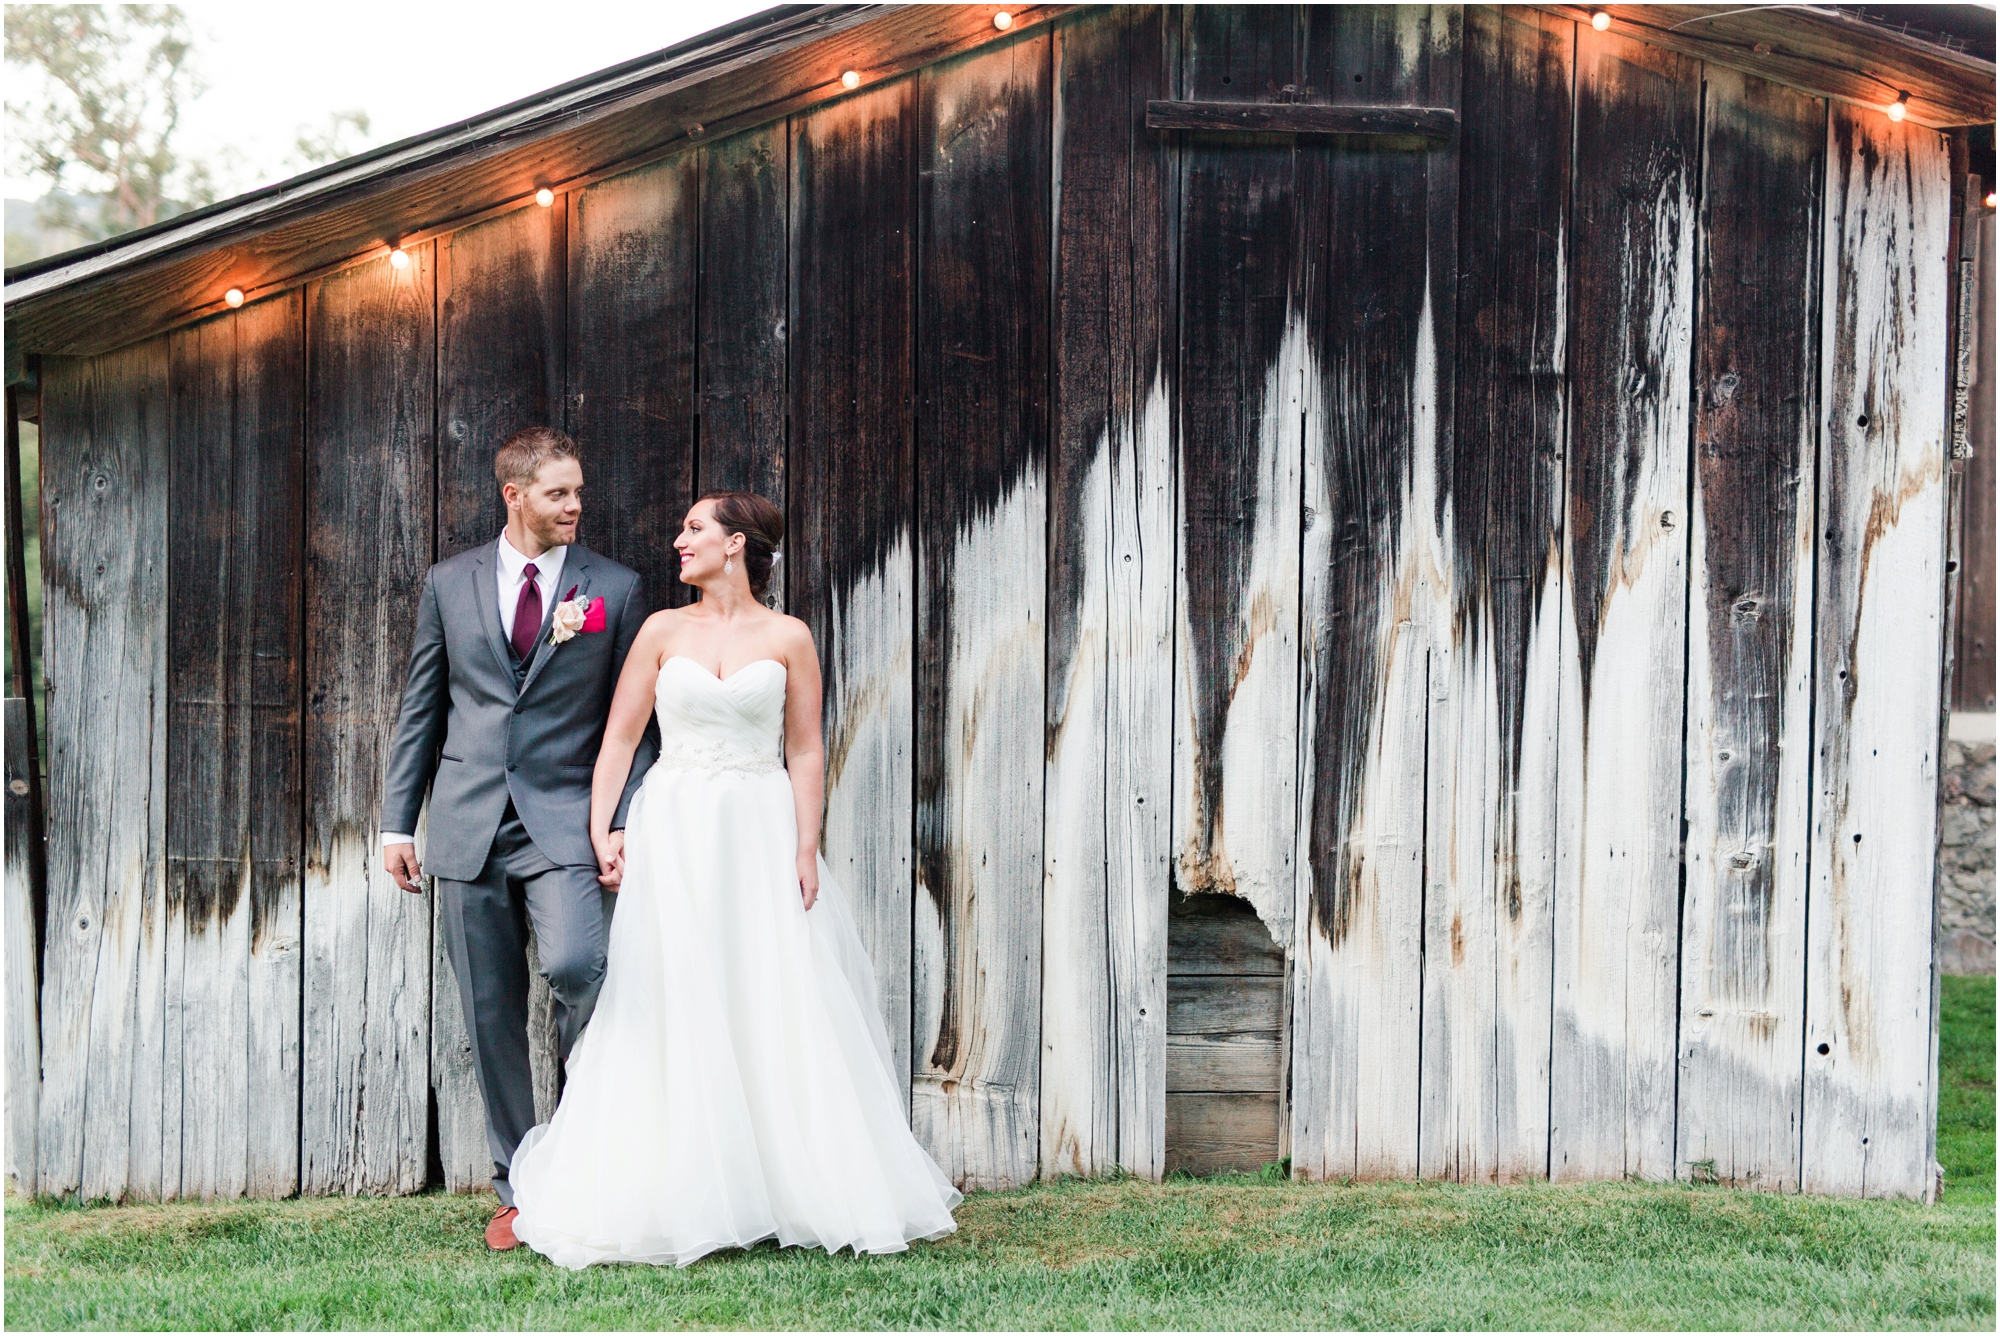 Picchetti Winery wedding pictures by Briana Calderon Photography_0486.jpg